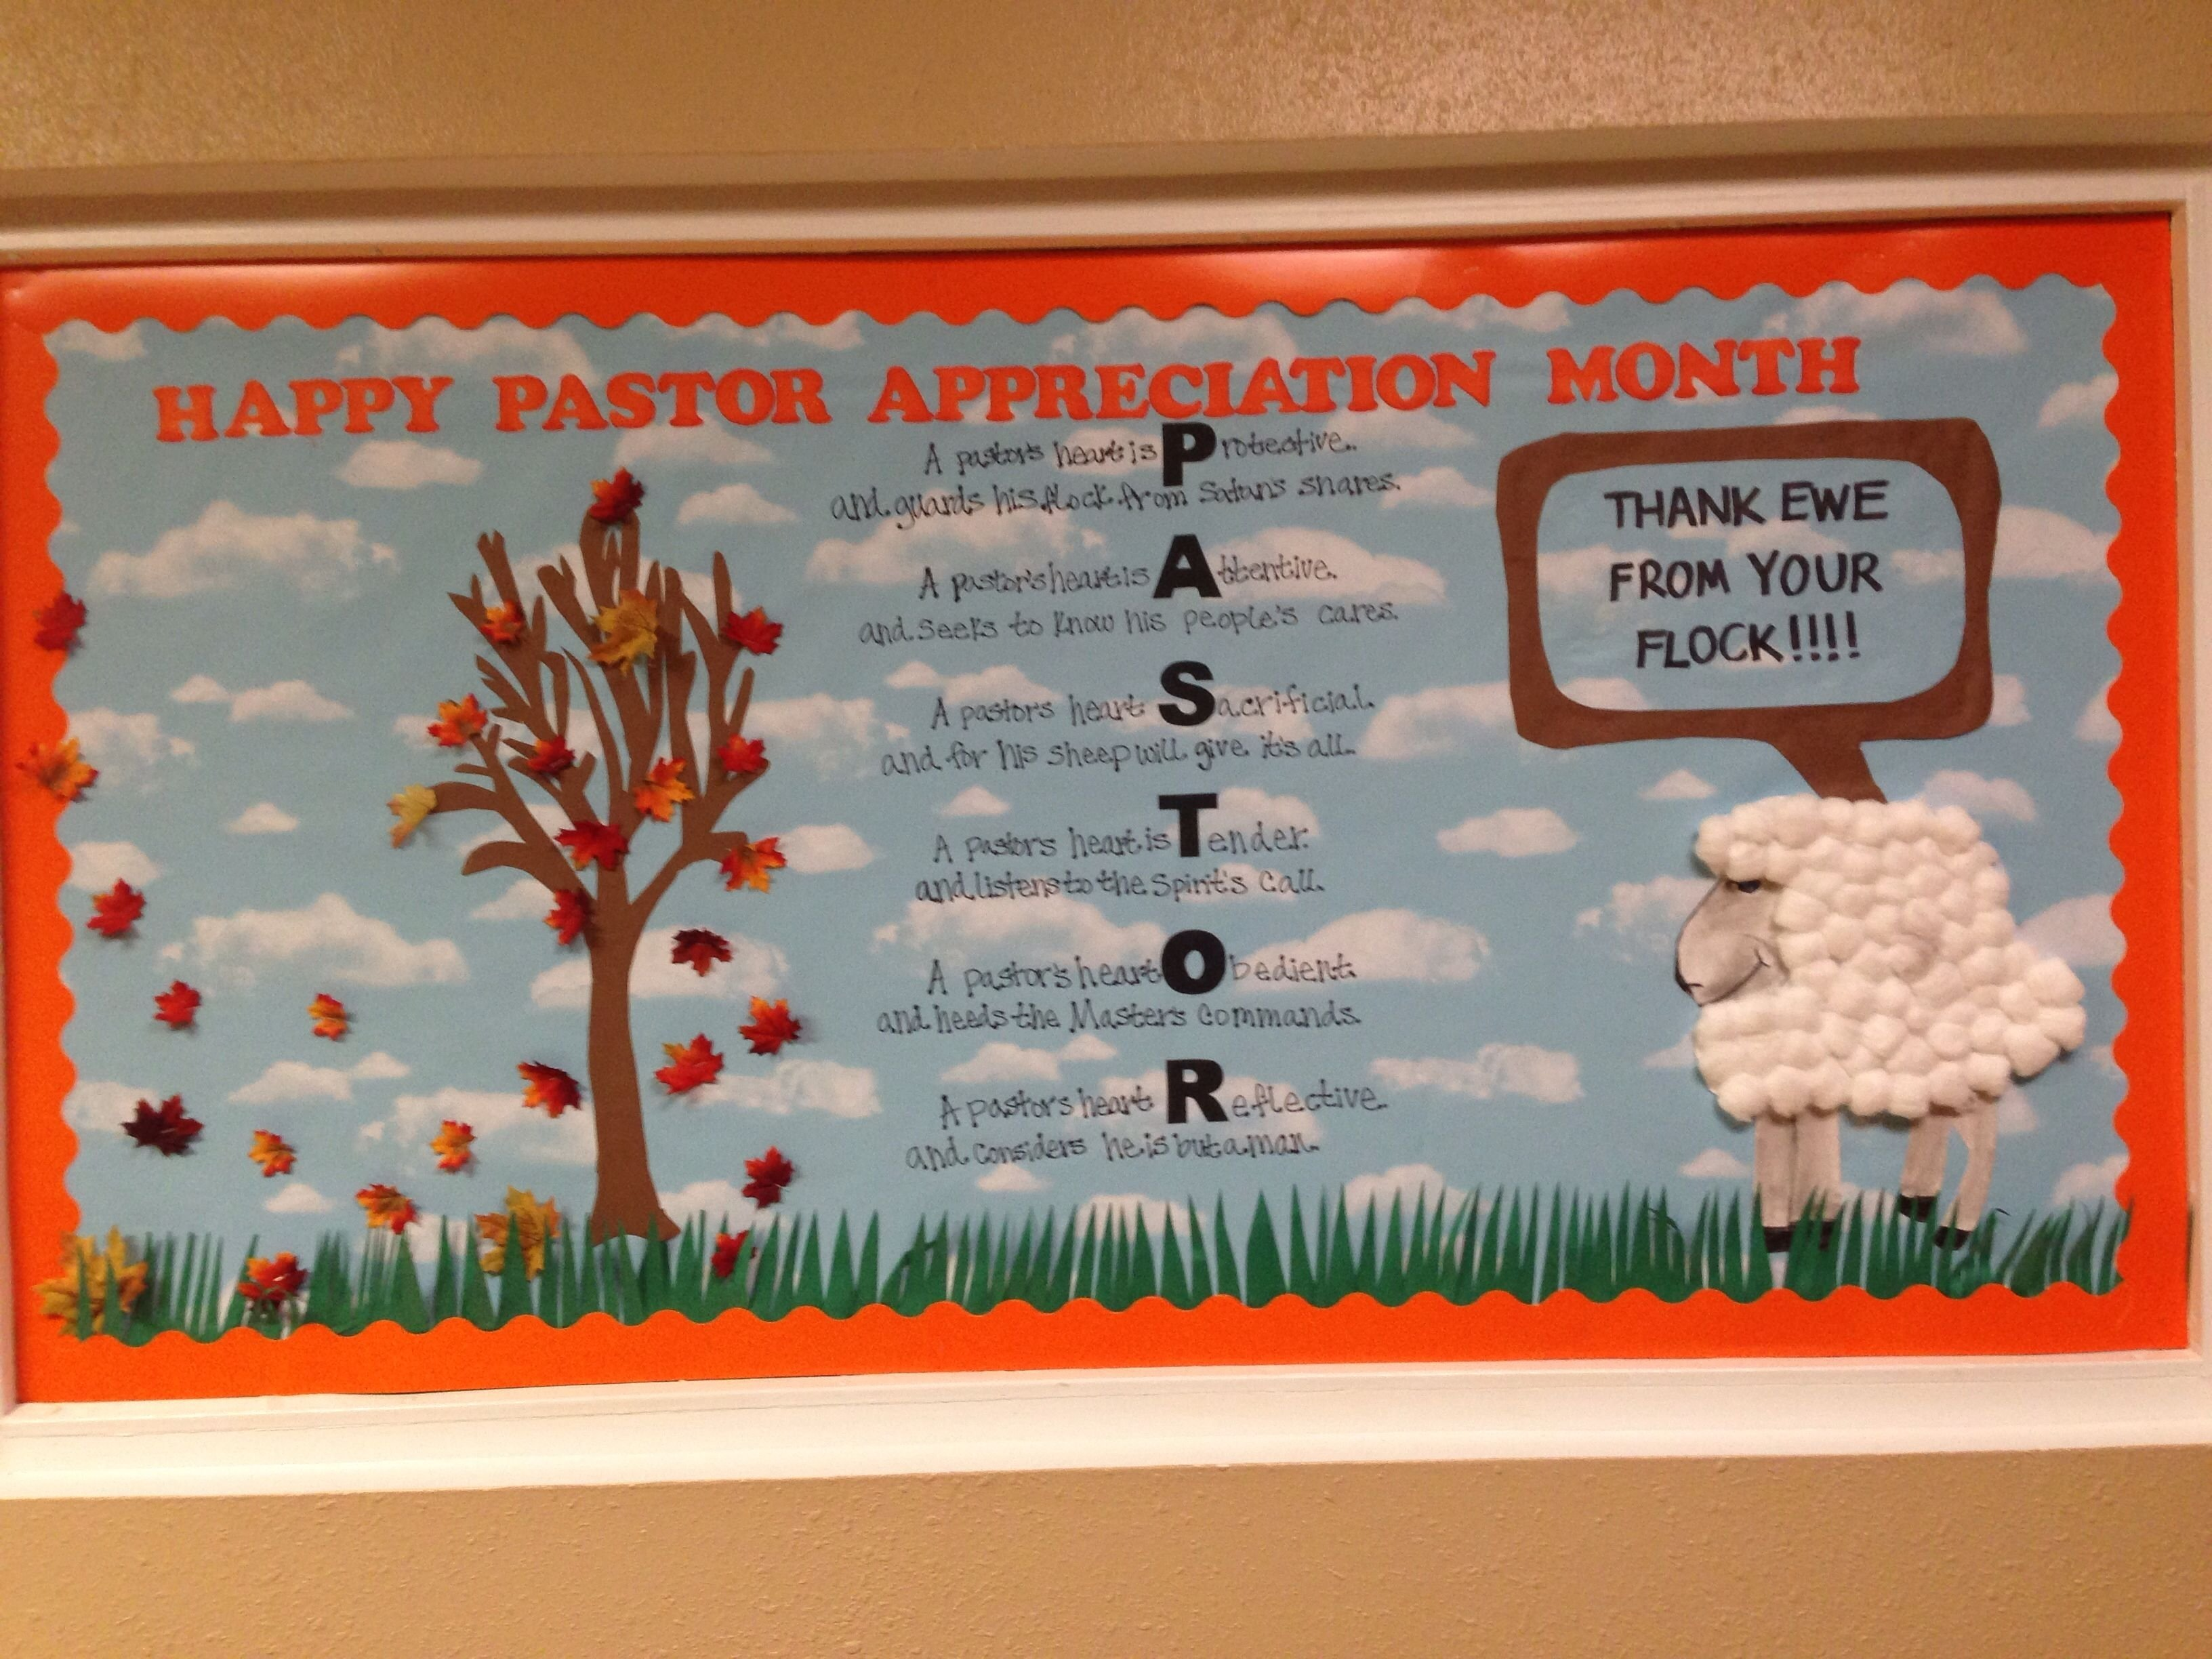 10 Stylish Ideas For Pastor Appreciation Month pastor appreciation ideas pastor appreciation bulletin board vbs 1 2020